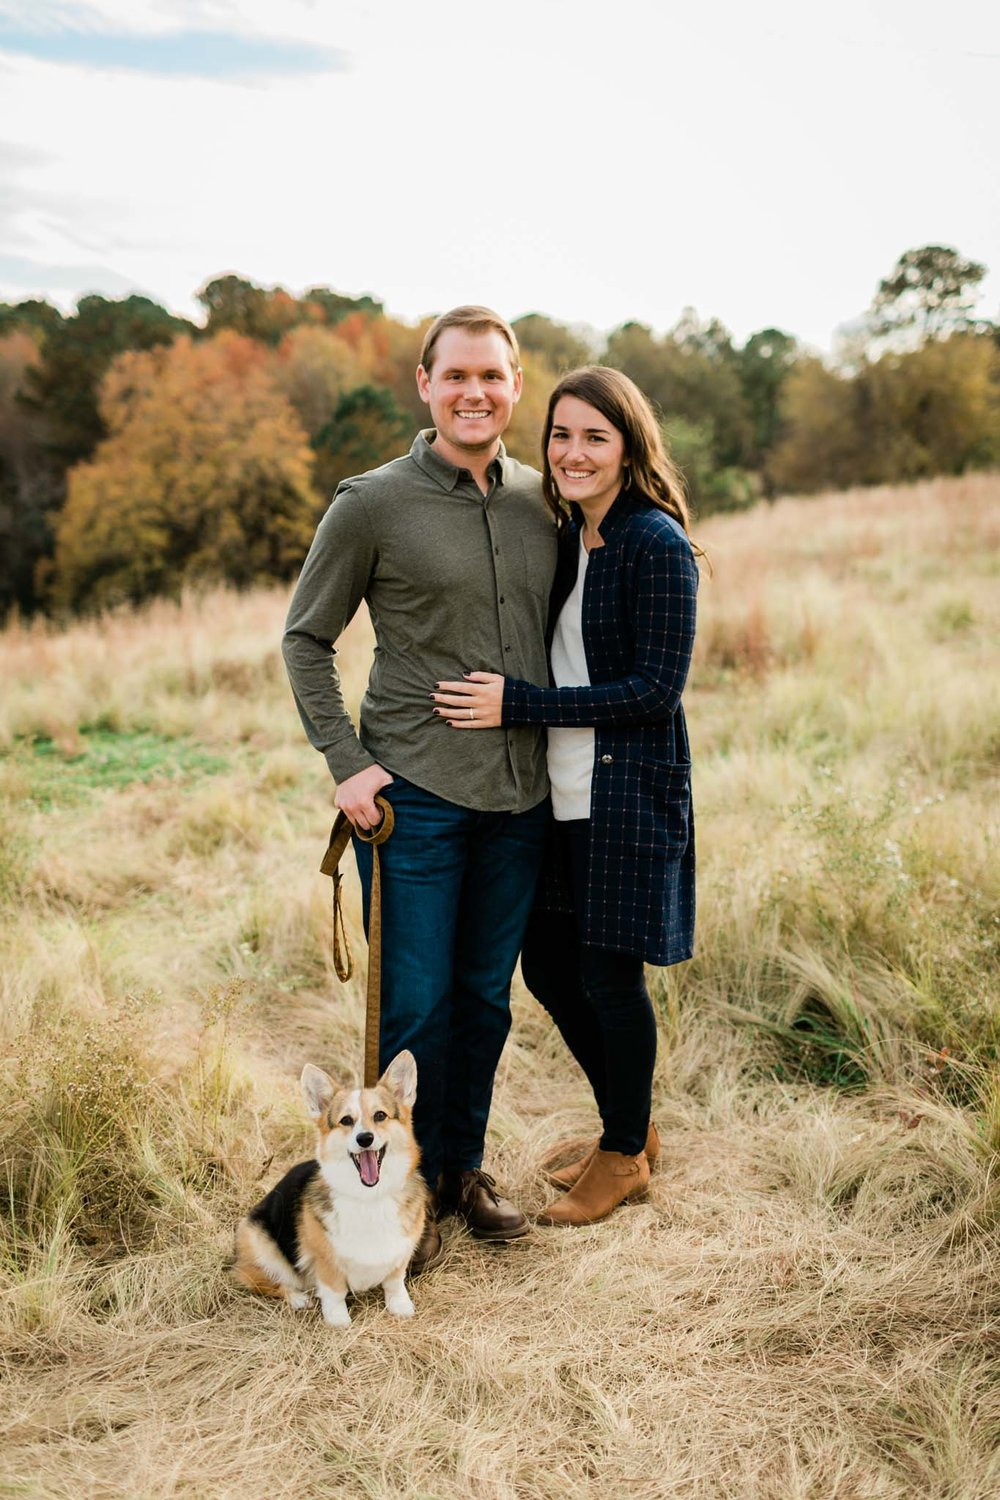 Outdoor family portrait with corgi at NCMA | Raleigh Family Photographer | By G. Lin Photography